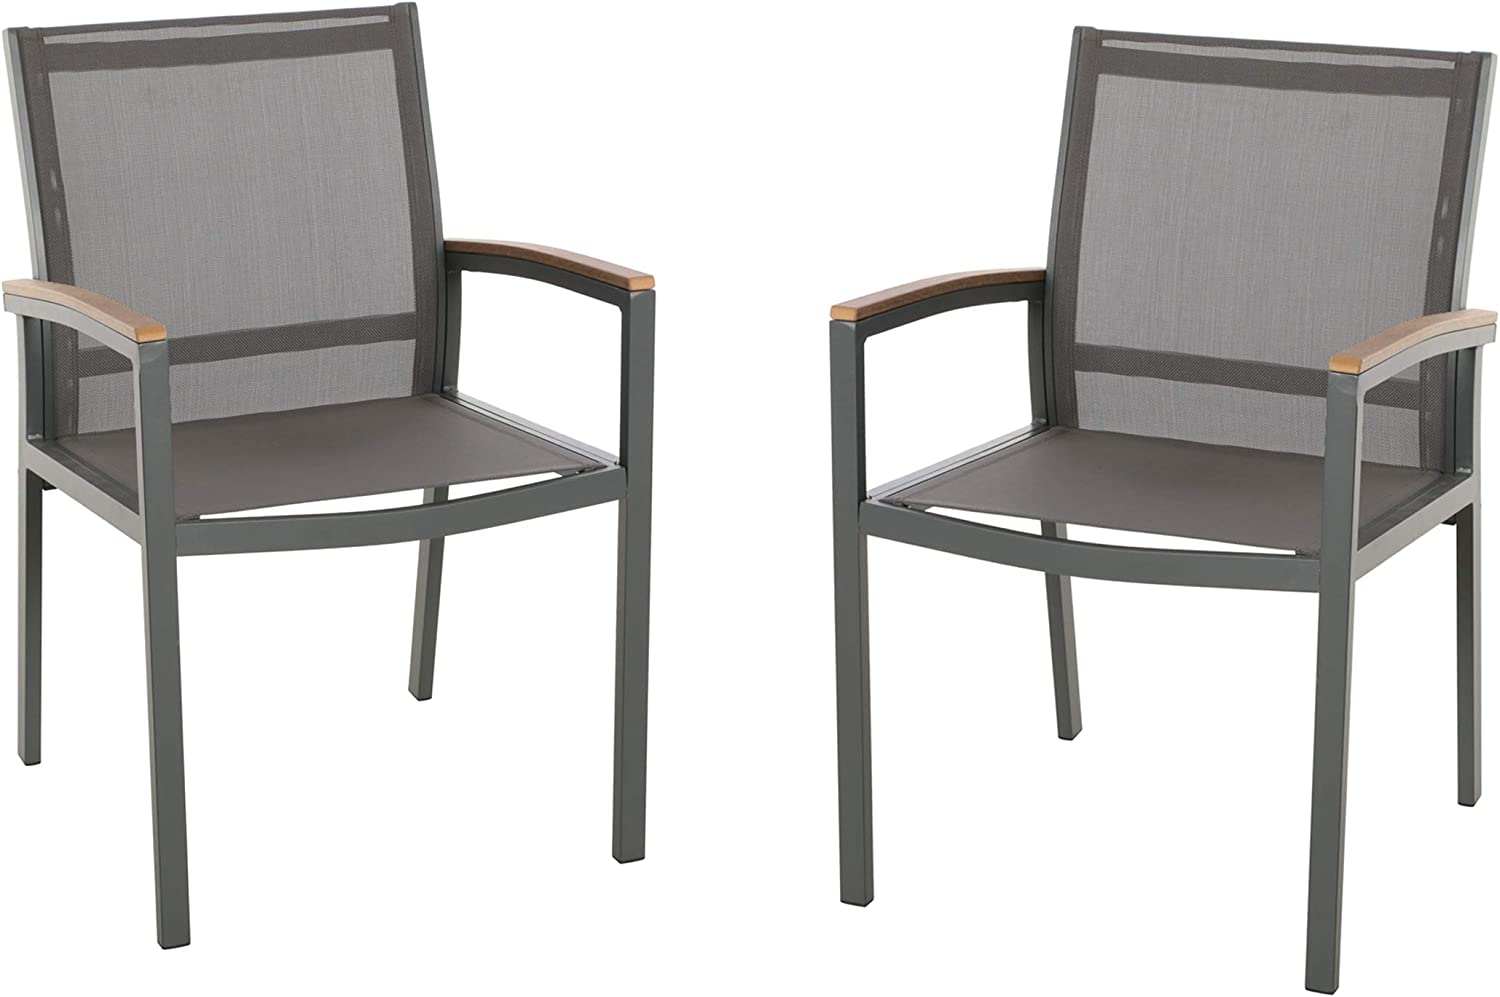 Christopher Knight Home 305223 Emma Outdoor Mesh and Aluminum Frame Dining Chair Set of 2 , Gray